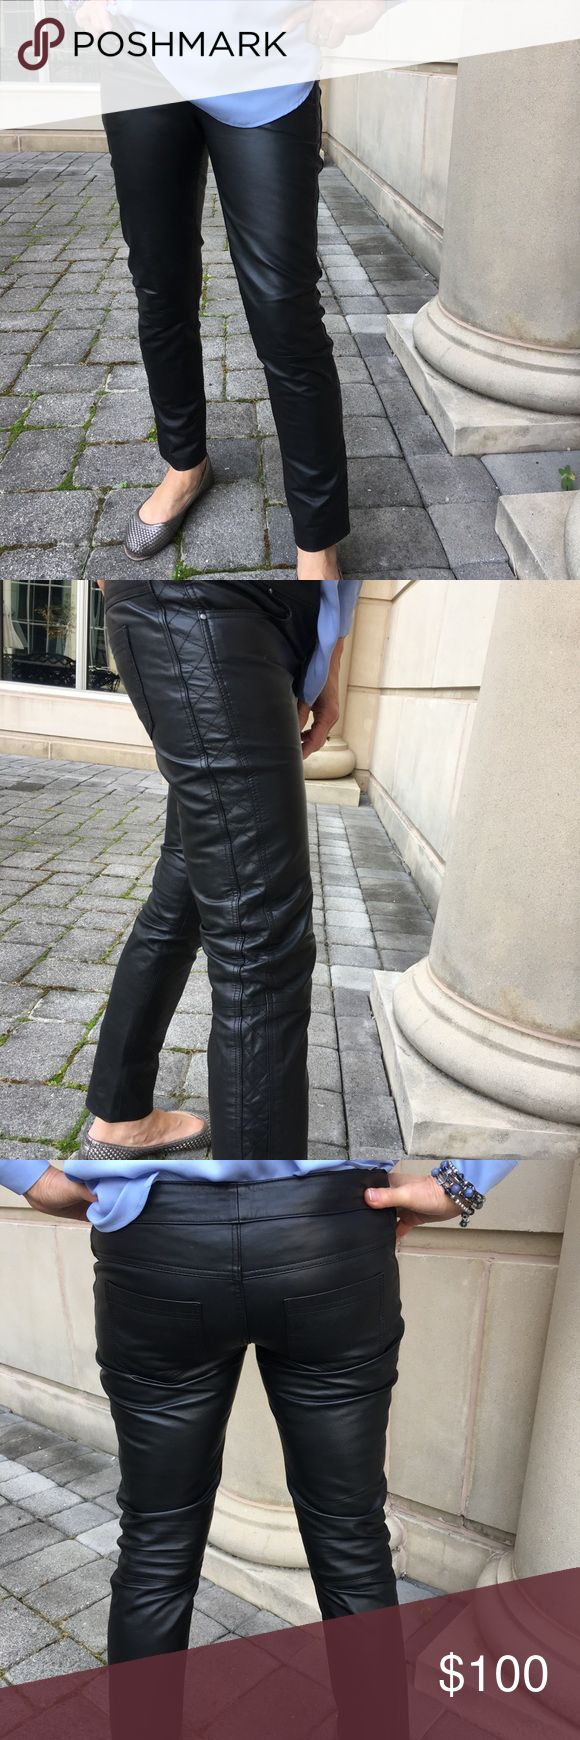 """Leather pants Beautiful black leather luxurious pants.  Bought in Paris last year.  Top-stitched with a quilted effect on the sides.  Straight leg.  Size is T1 which is close to 0-2 in US sizes.  Waistline (as shown) is approximately 32"""", and length from inseam is almost 27"""".  Two back pockets.  Fully lined.  Fantastic condition. Bel Air Pants Straight Leg"""